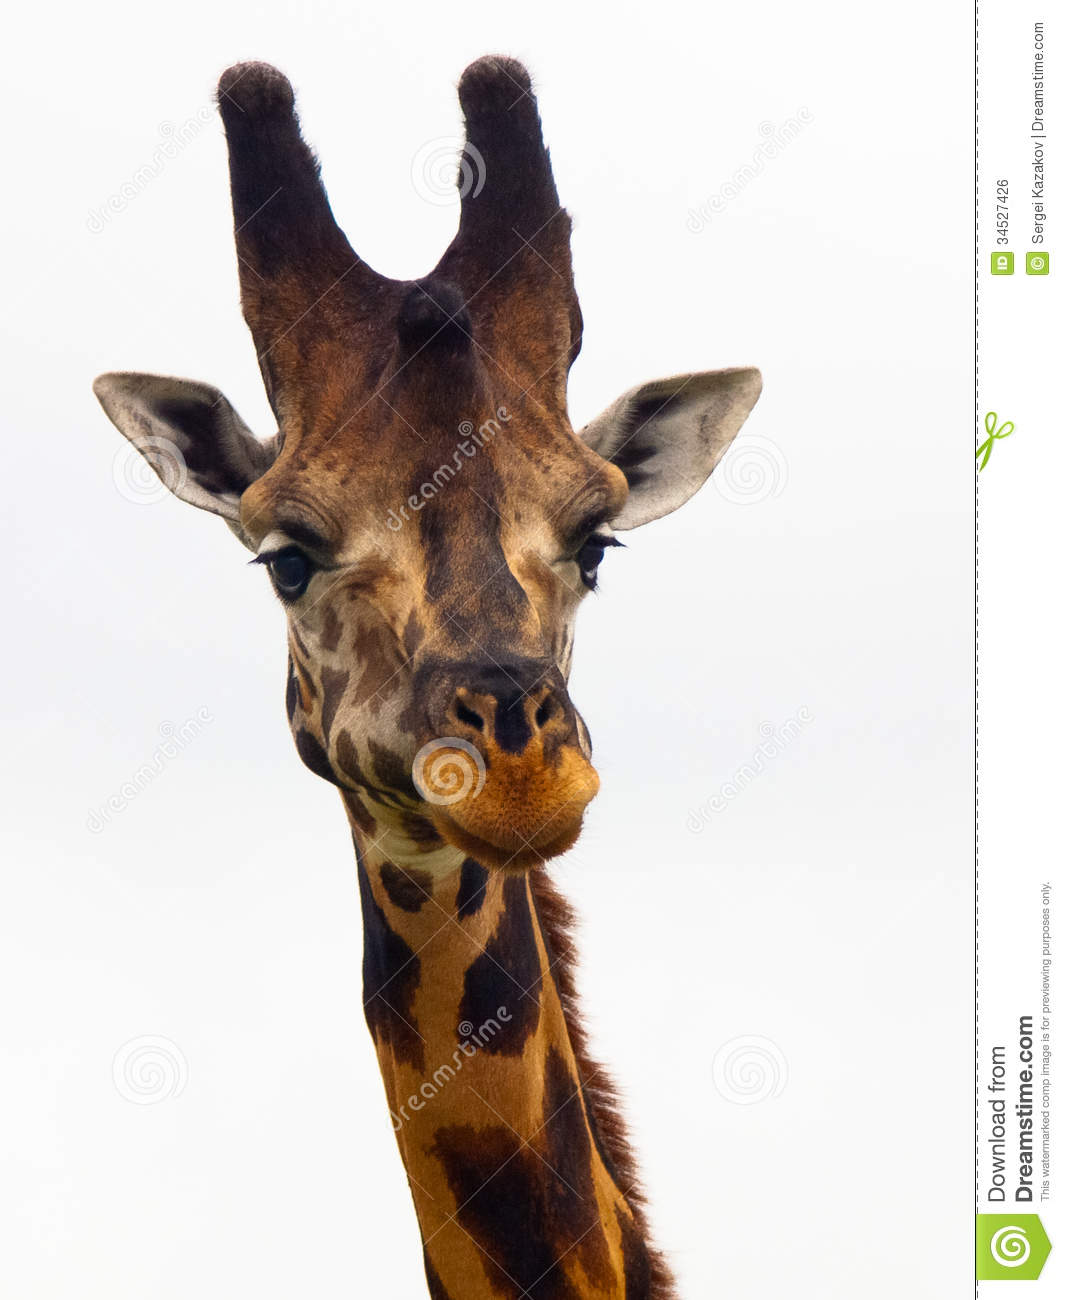 Giraffe head close up - photo#14